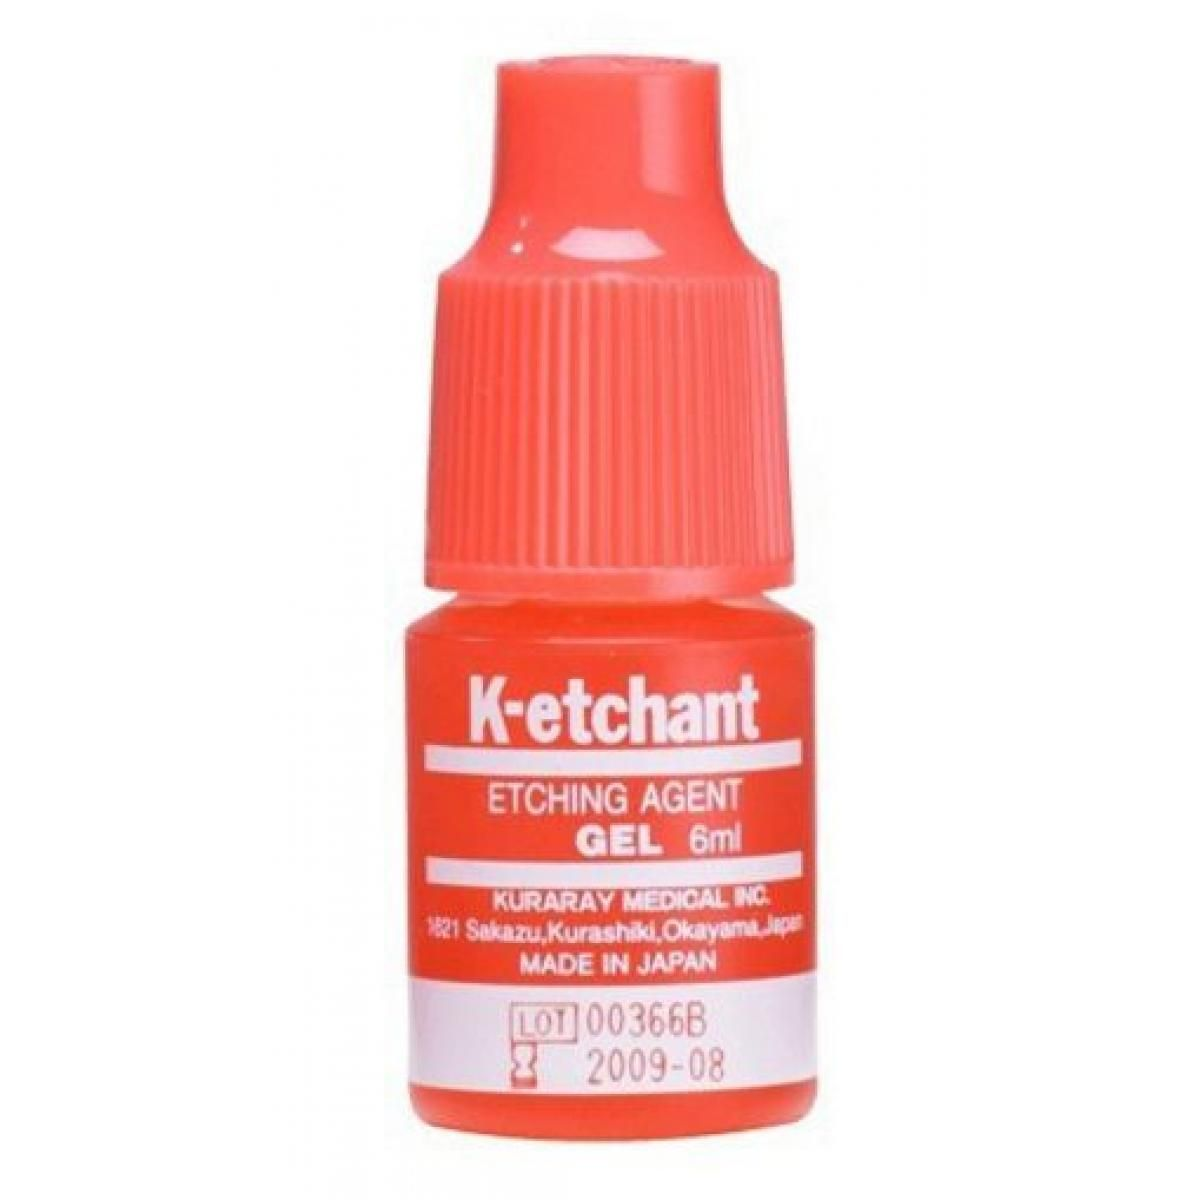 GRABADO K ETCHANT ACIDO ORTODFOSFORICO 40 GEL 6ML KURARAY -